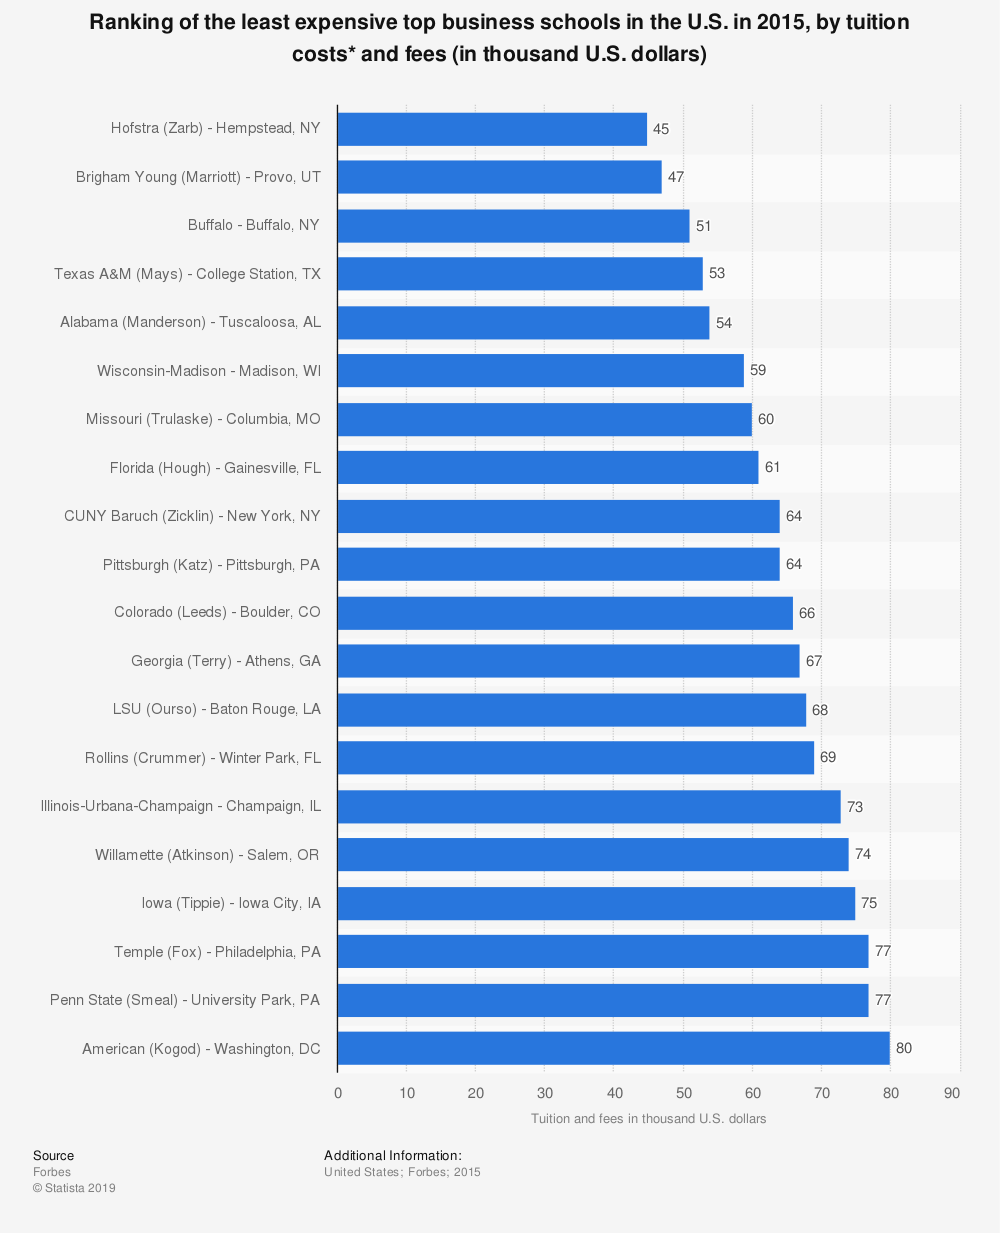 Statistic: Ranking of the least expensive top business schools in the U.S. in 2015, by tuition costs* and fees (in thousand U.S. dollars) | Statista